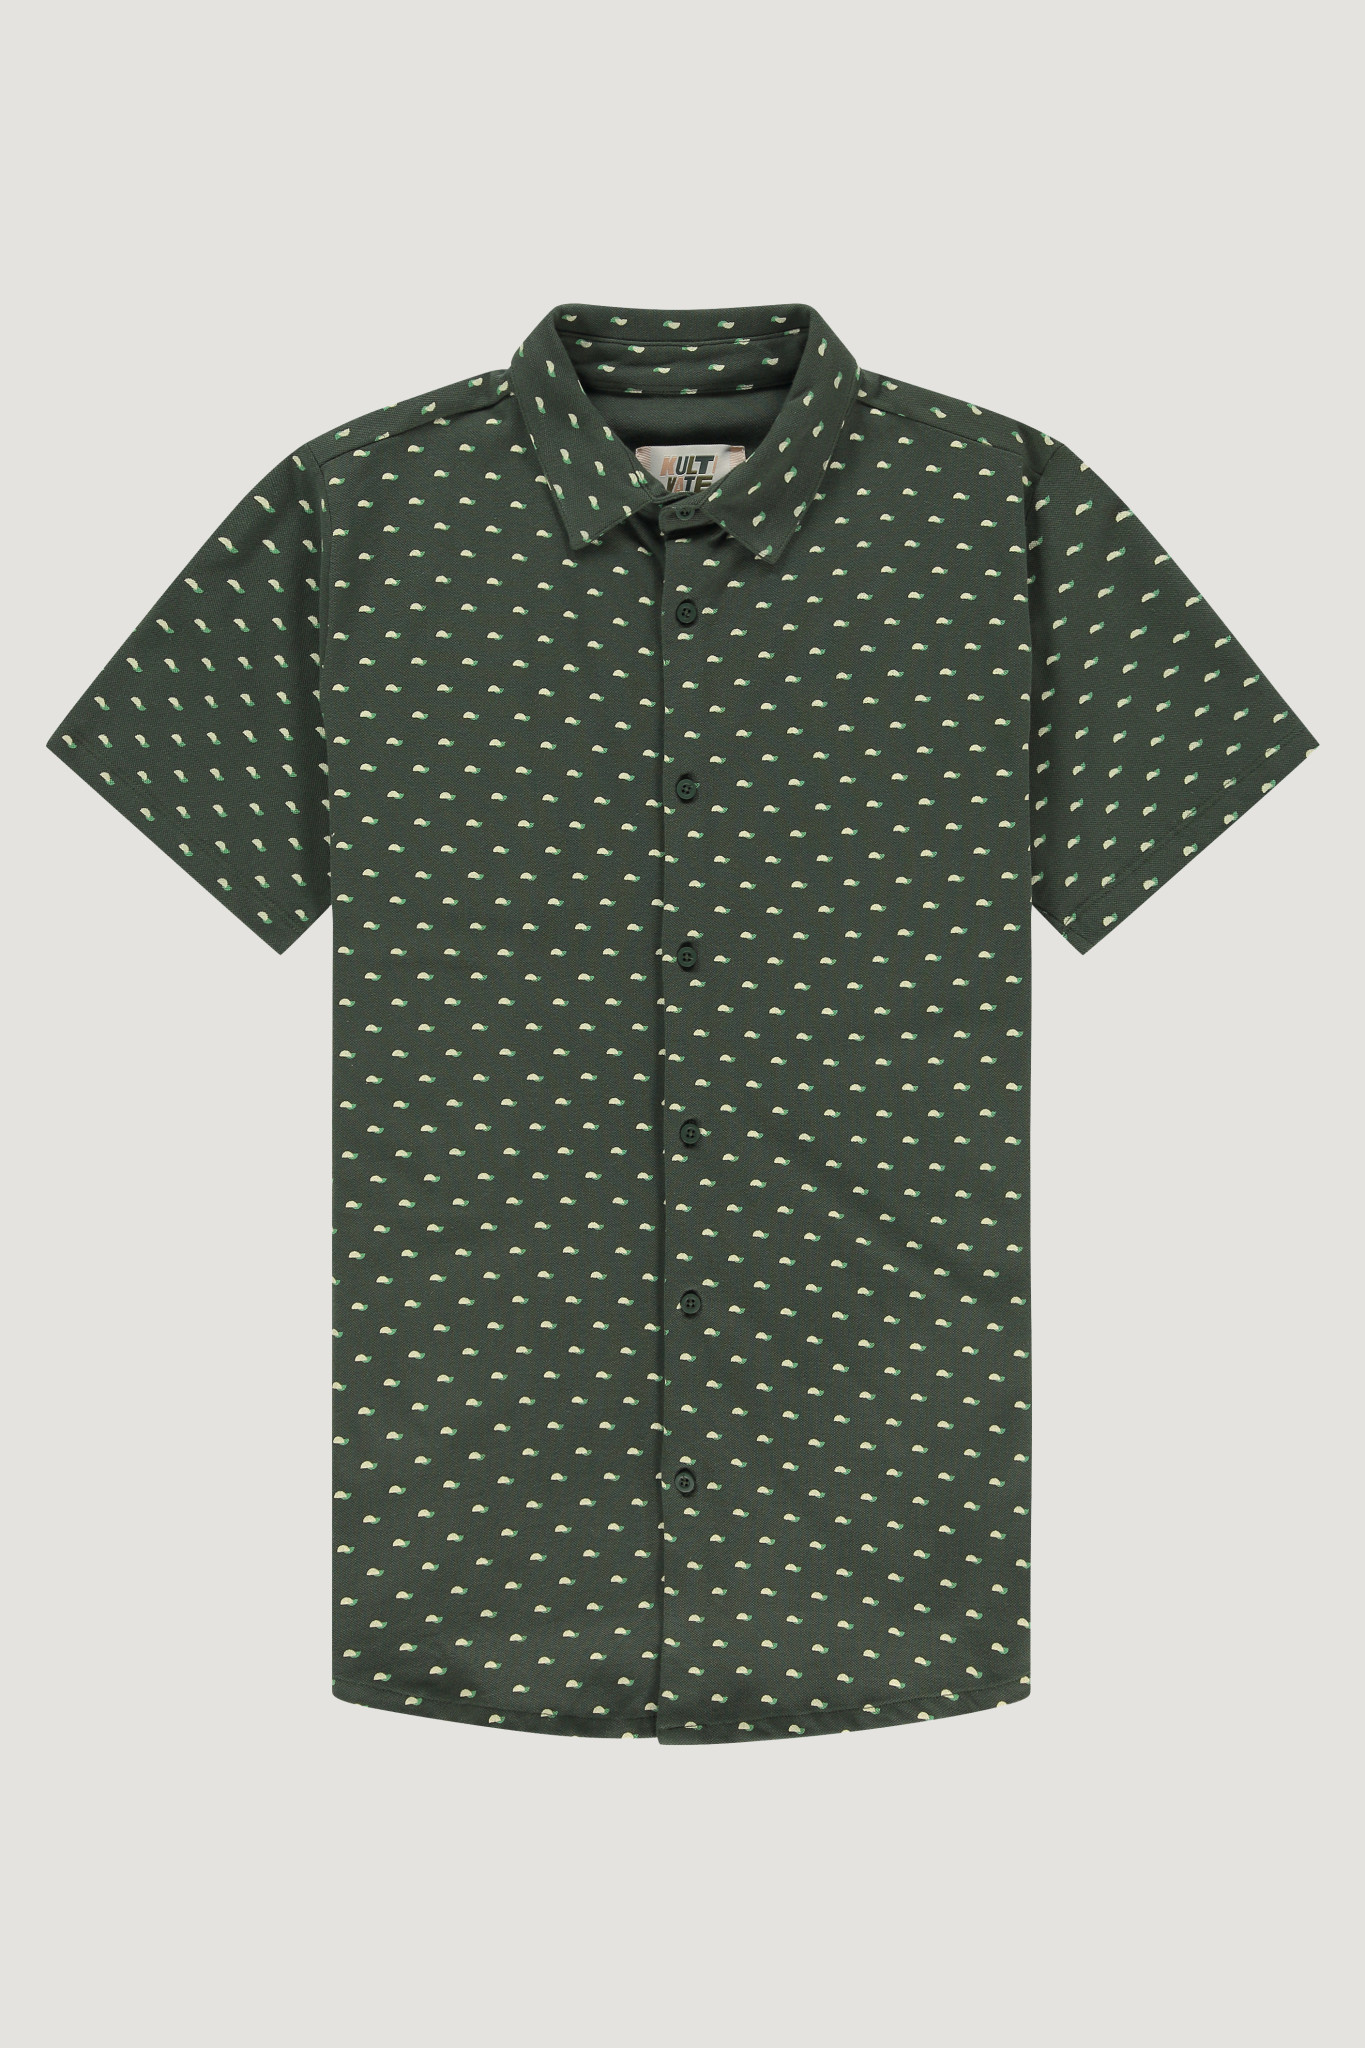 Kultivate Kultivate Hemicycle Shirt Deep Forrest Green